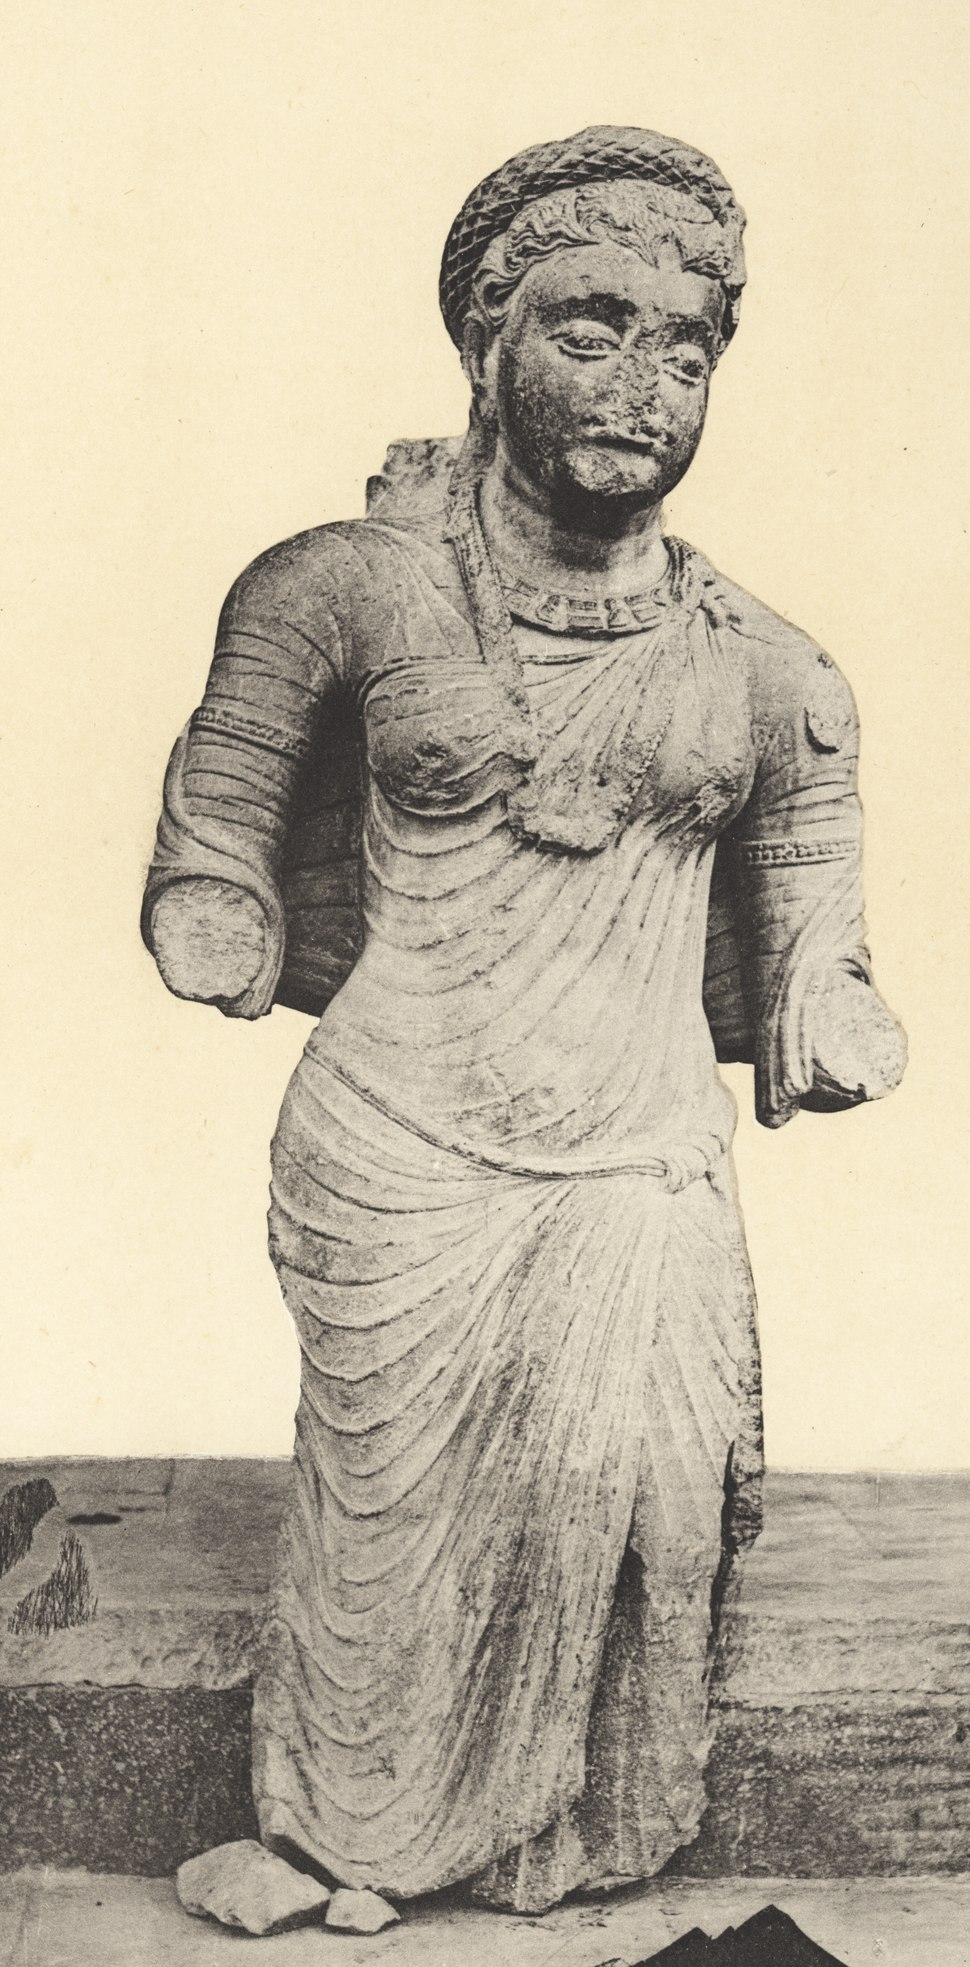 KITLV 87971 - Unknown - Sculpture of a woman at Mathura in British India - 1897